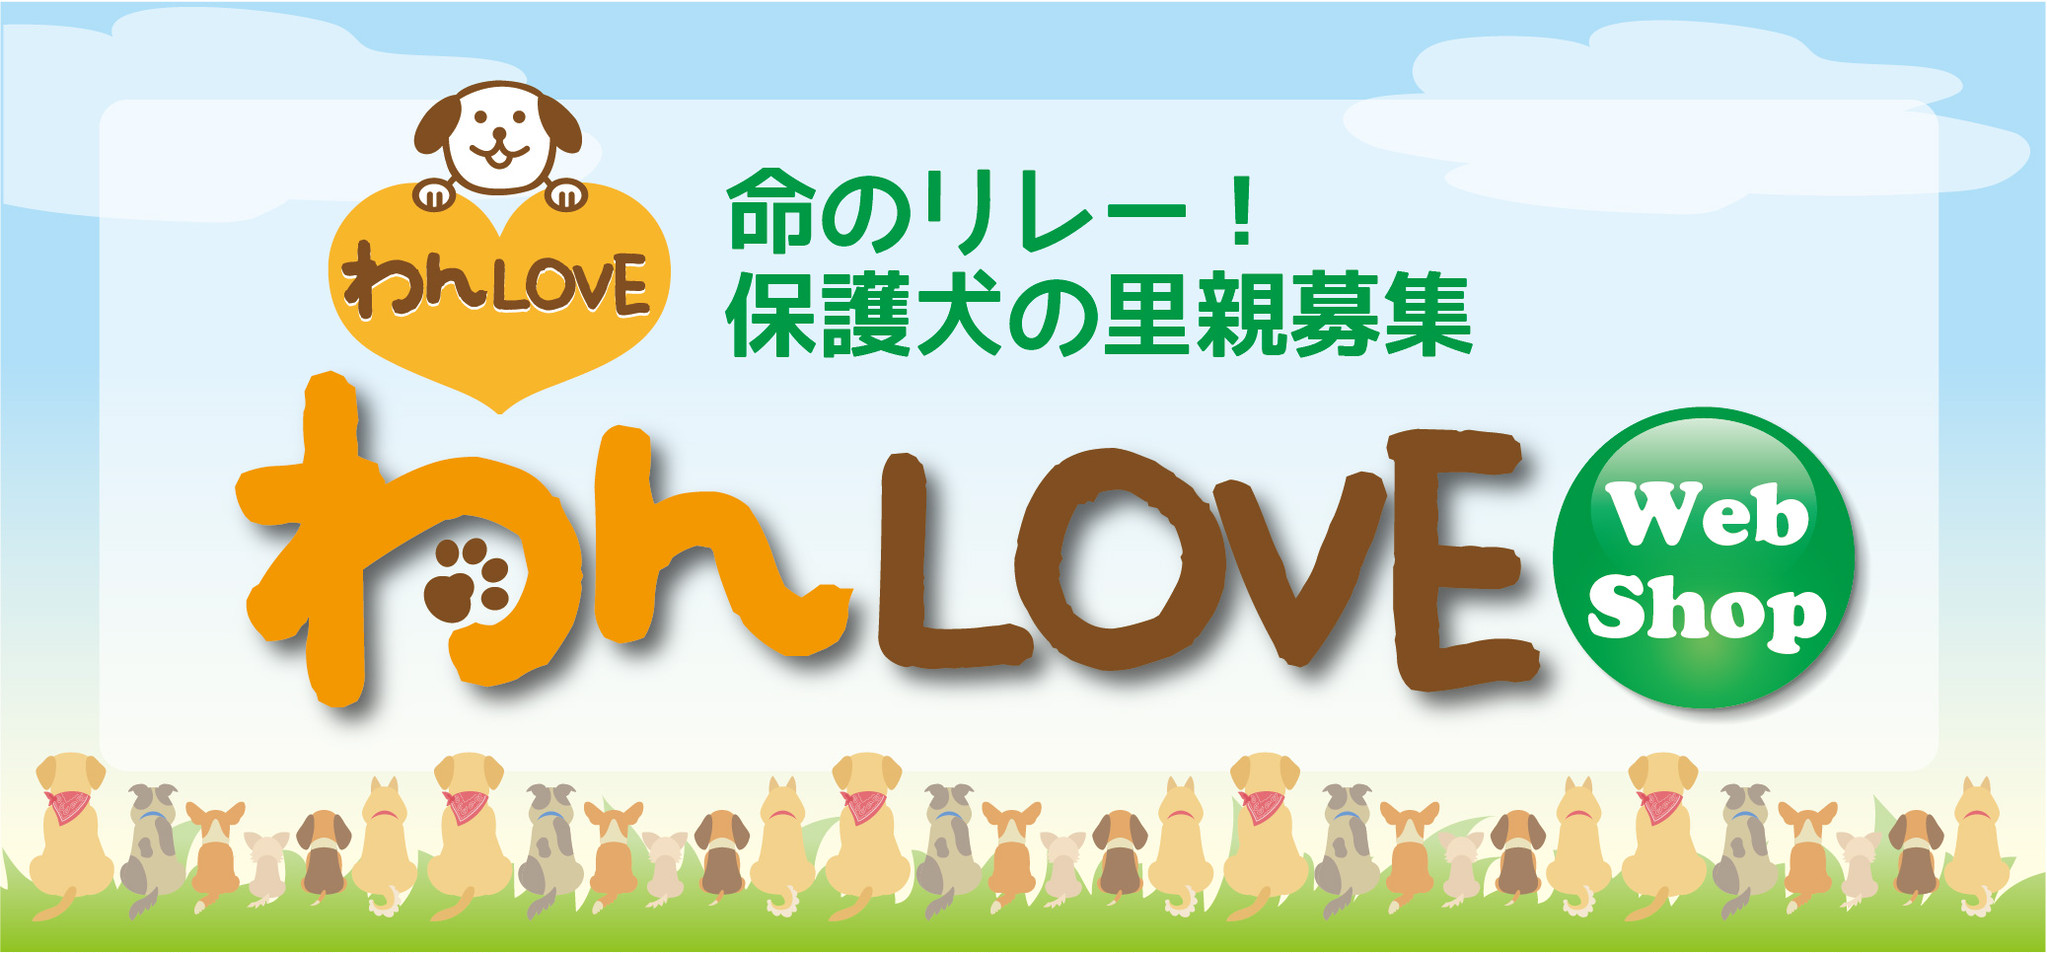 わんLOVE web shop